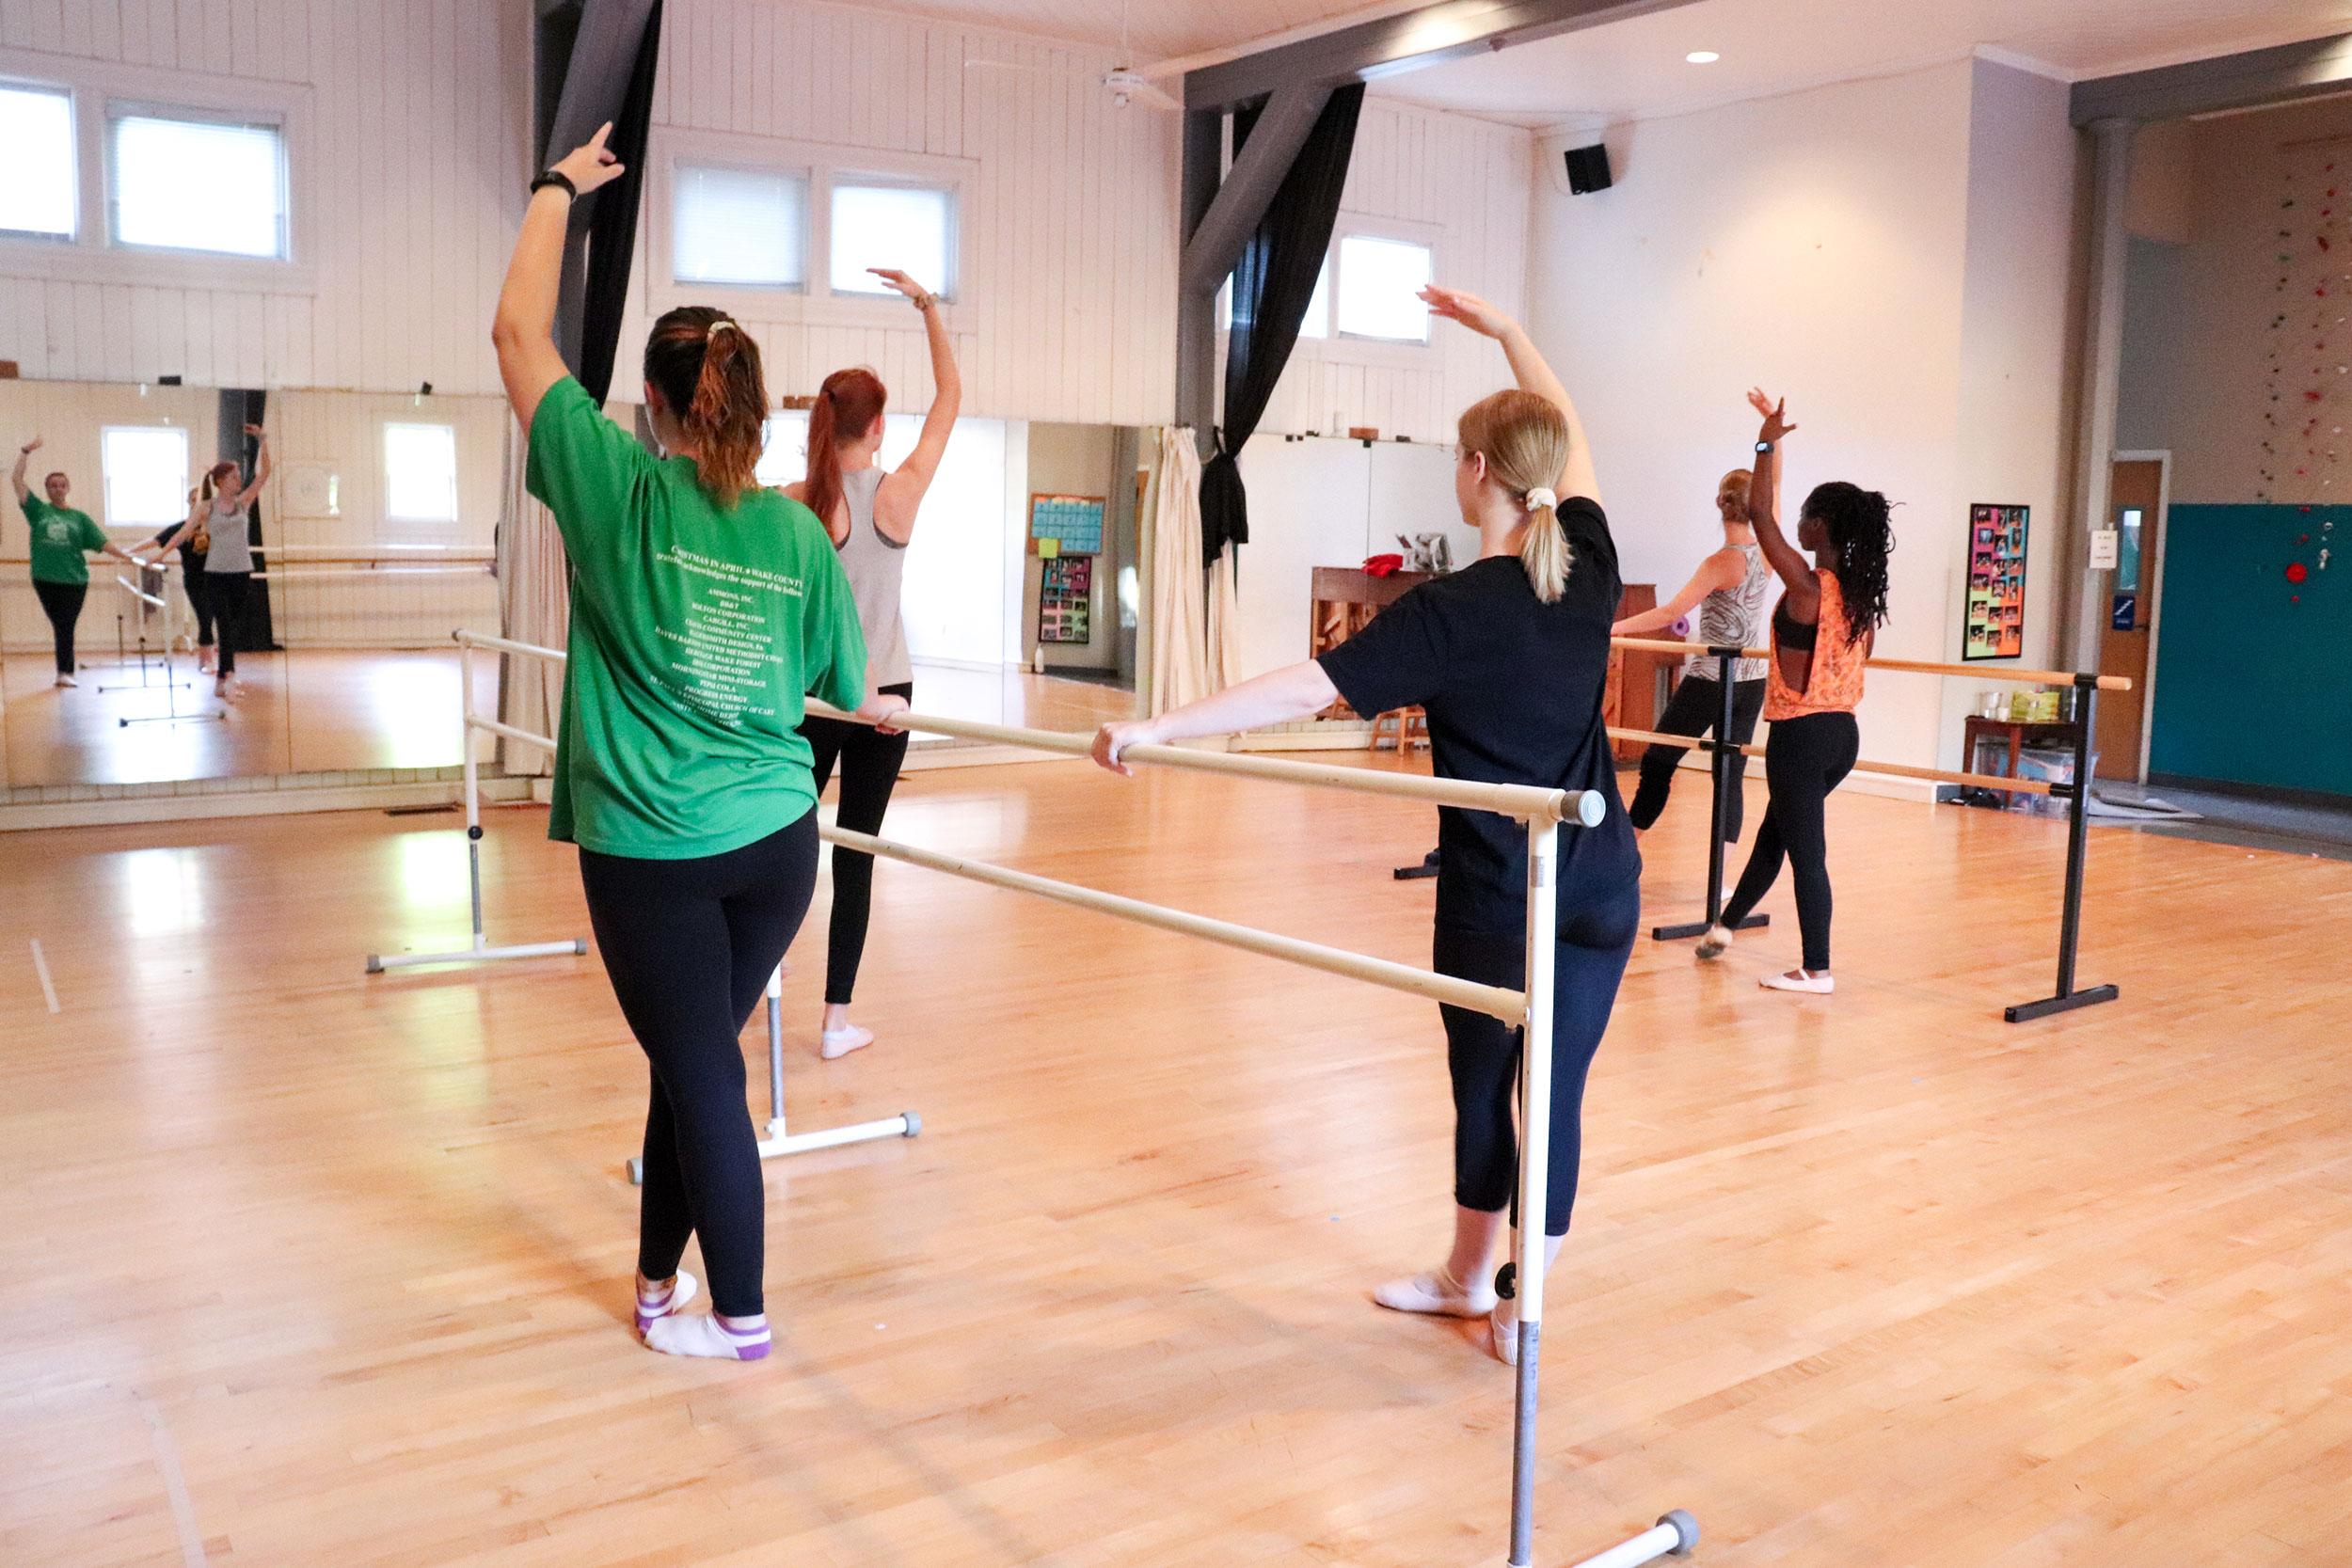 Ballet students practice at the barre.